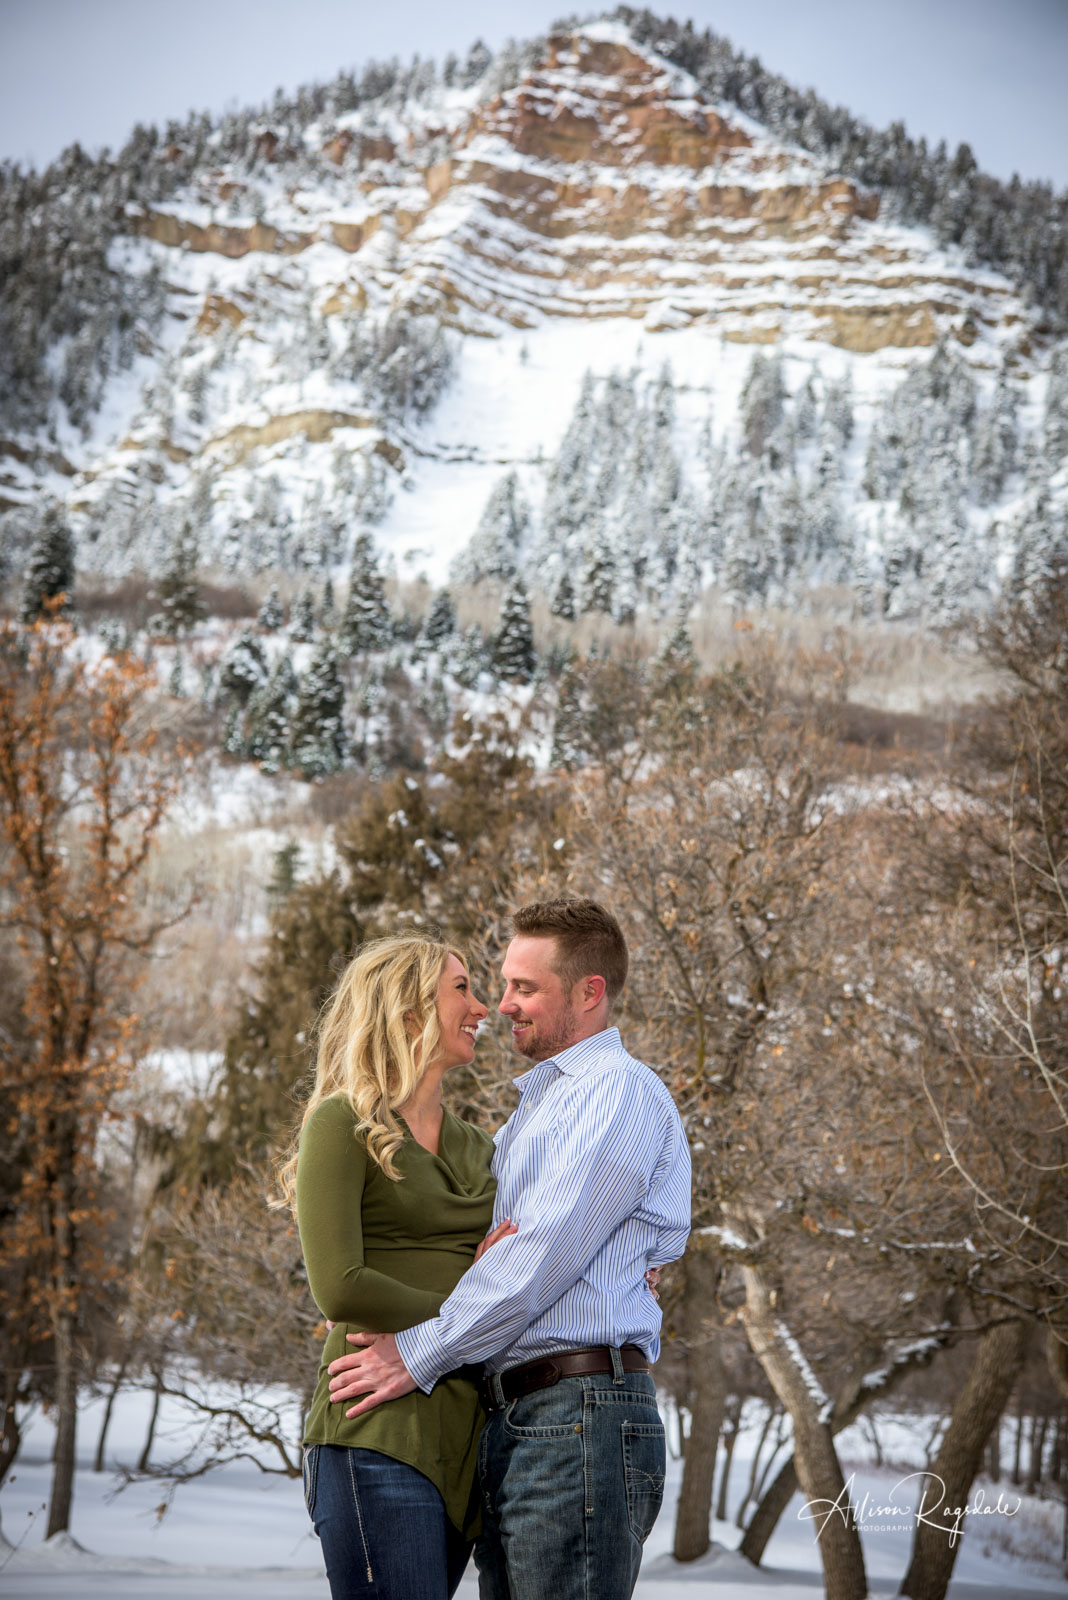 Jessie & Ryan's Durango Colorado Engagement Portraits